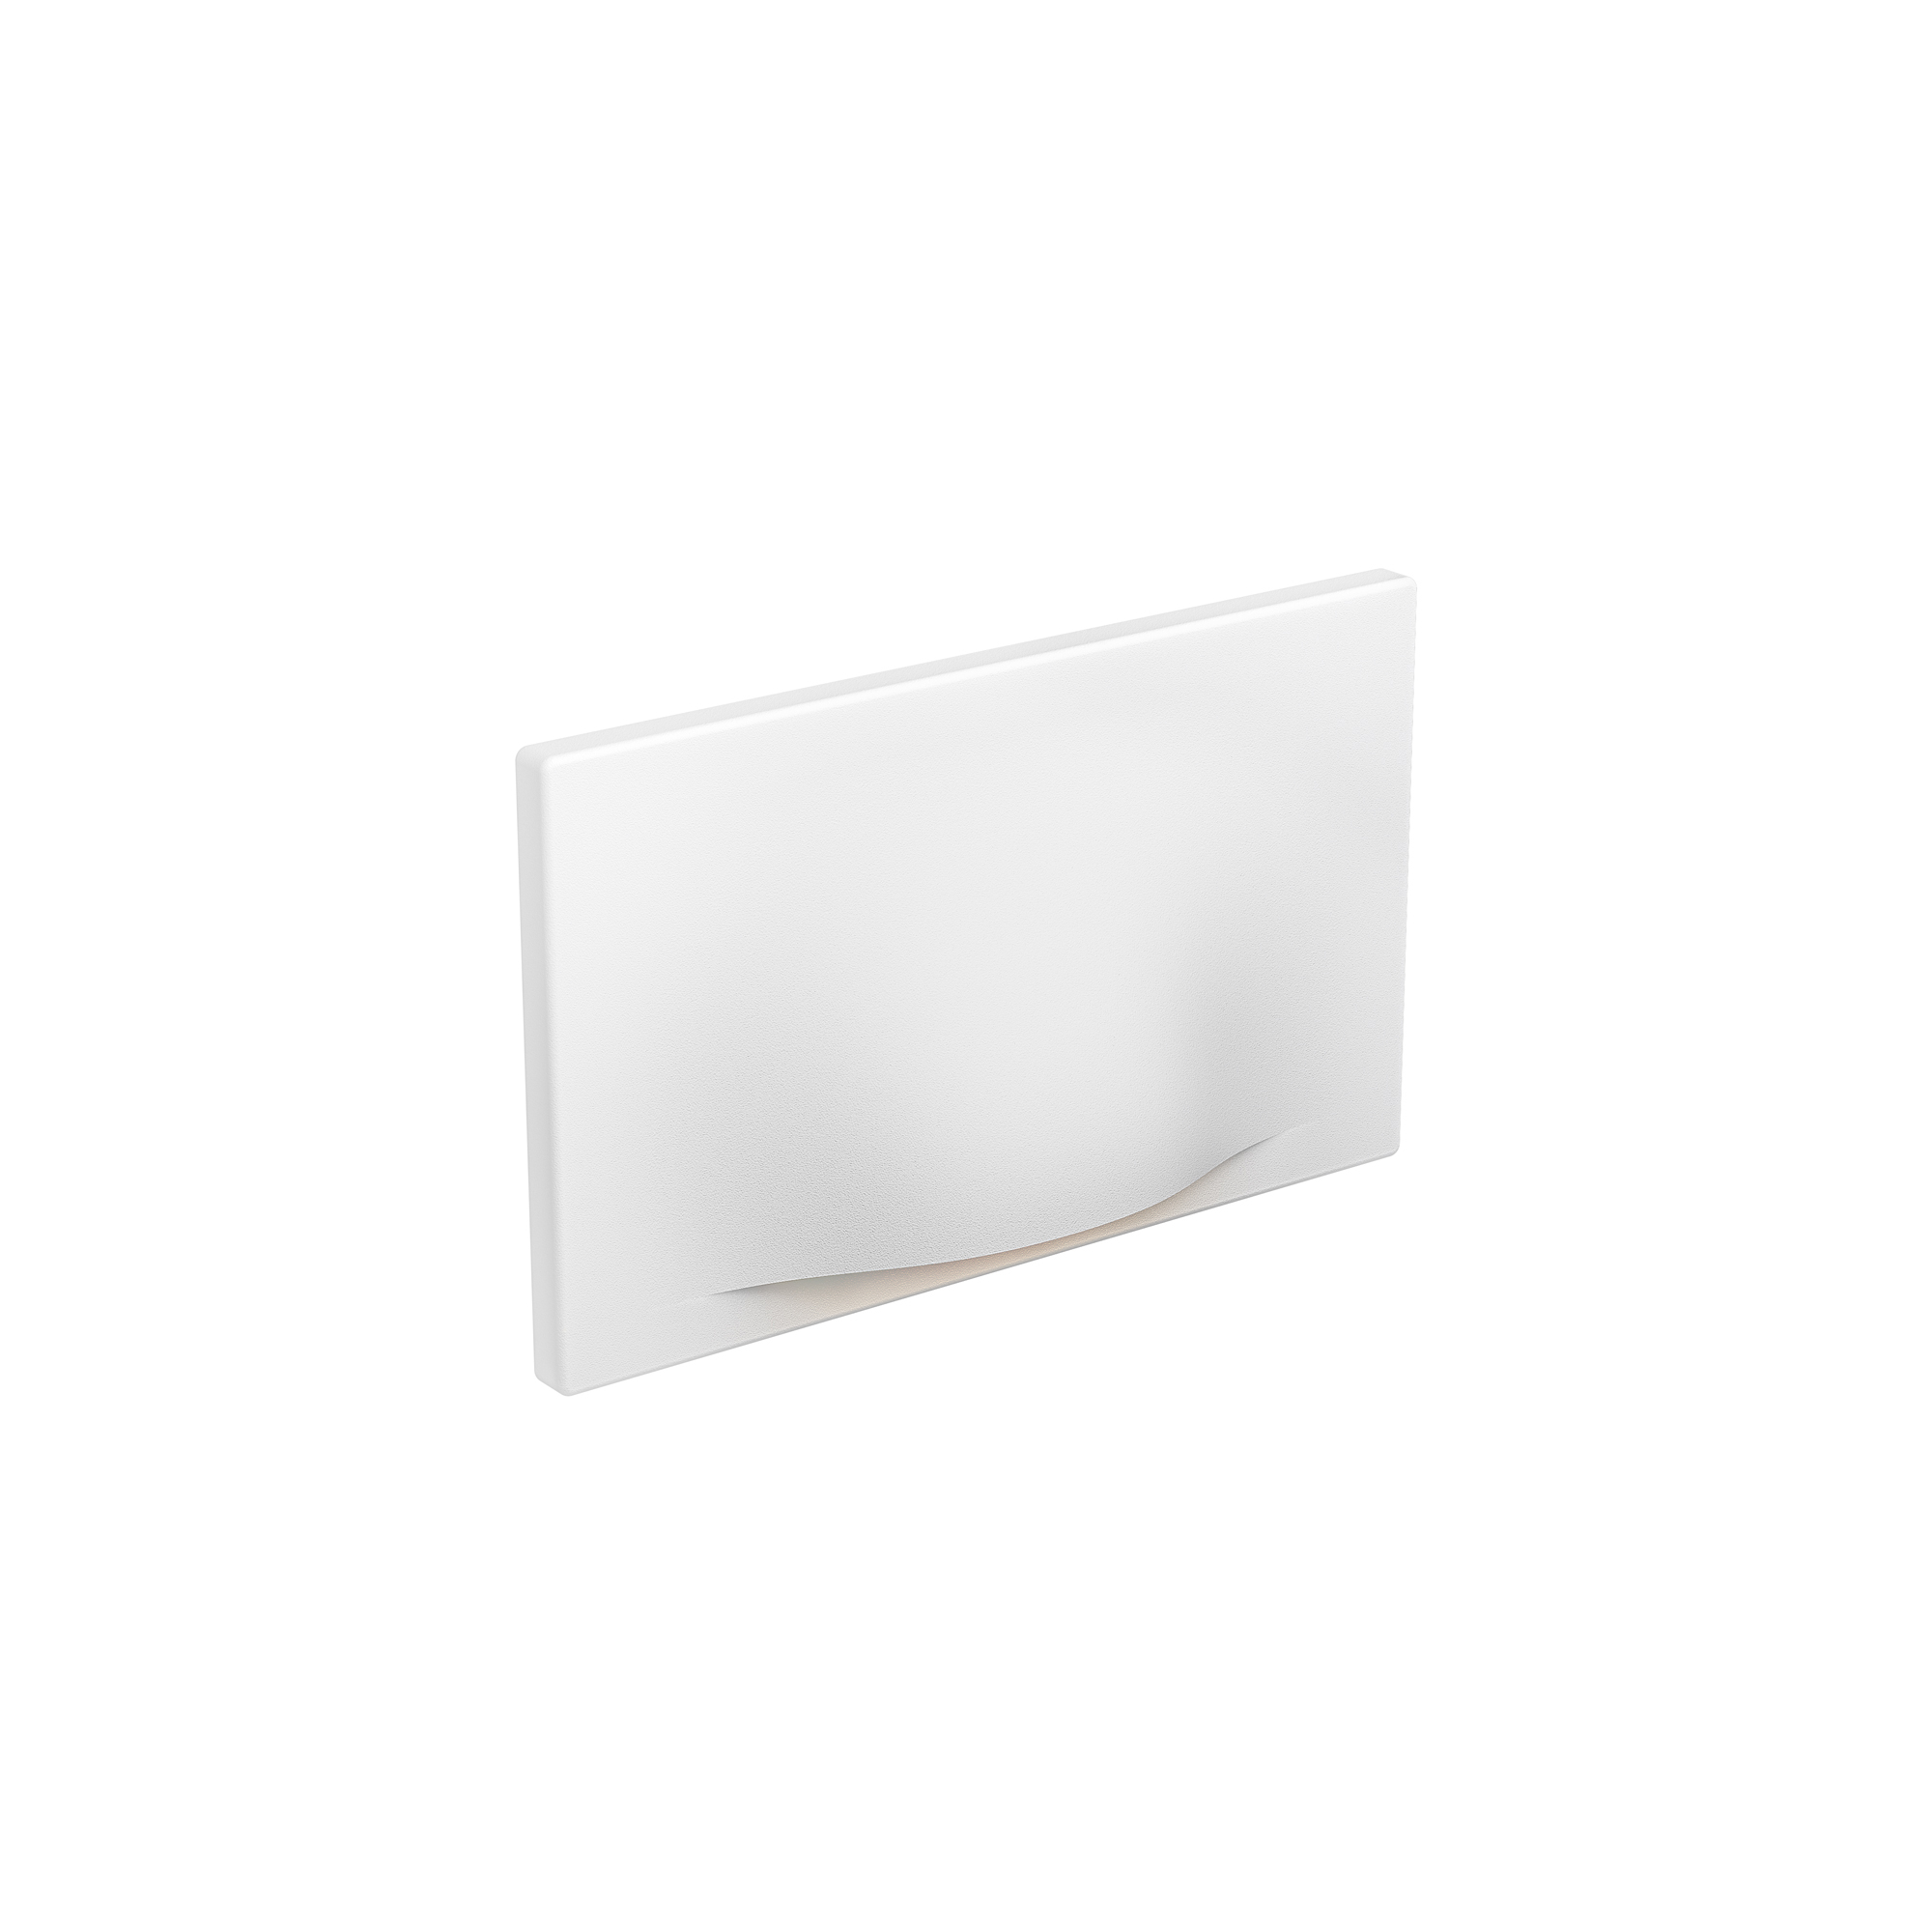 LEDSTEP006D - Recessed horizontal LED step light